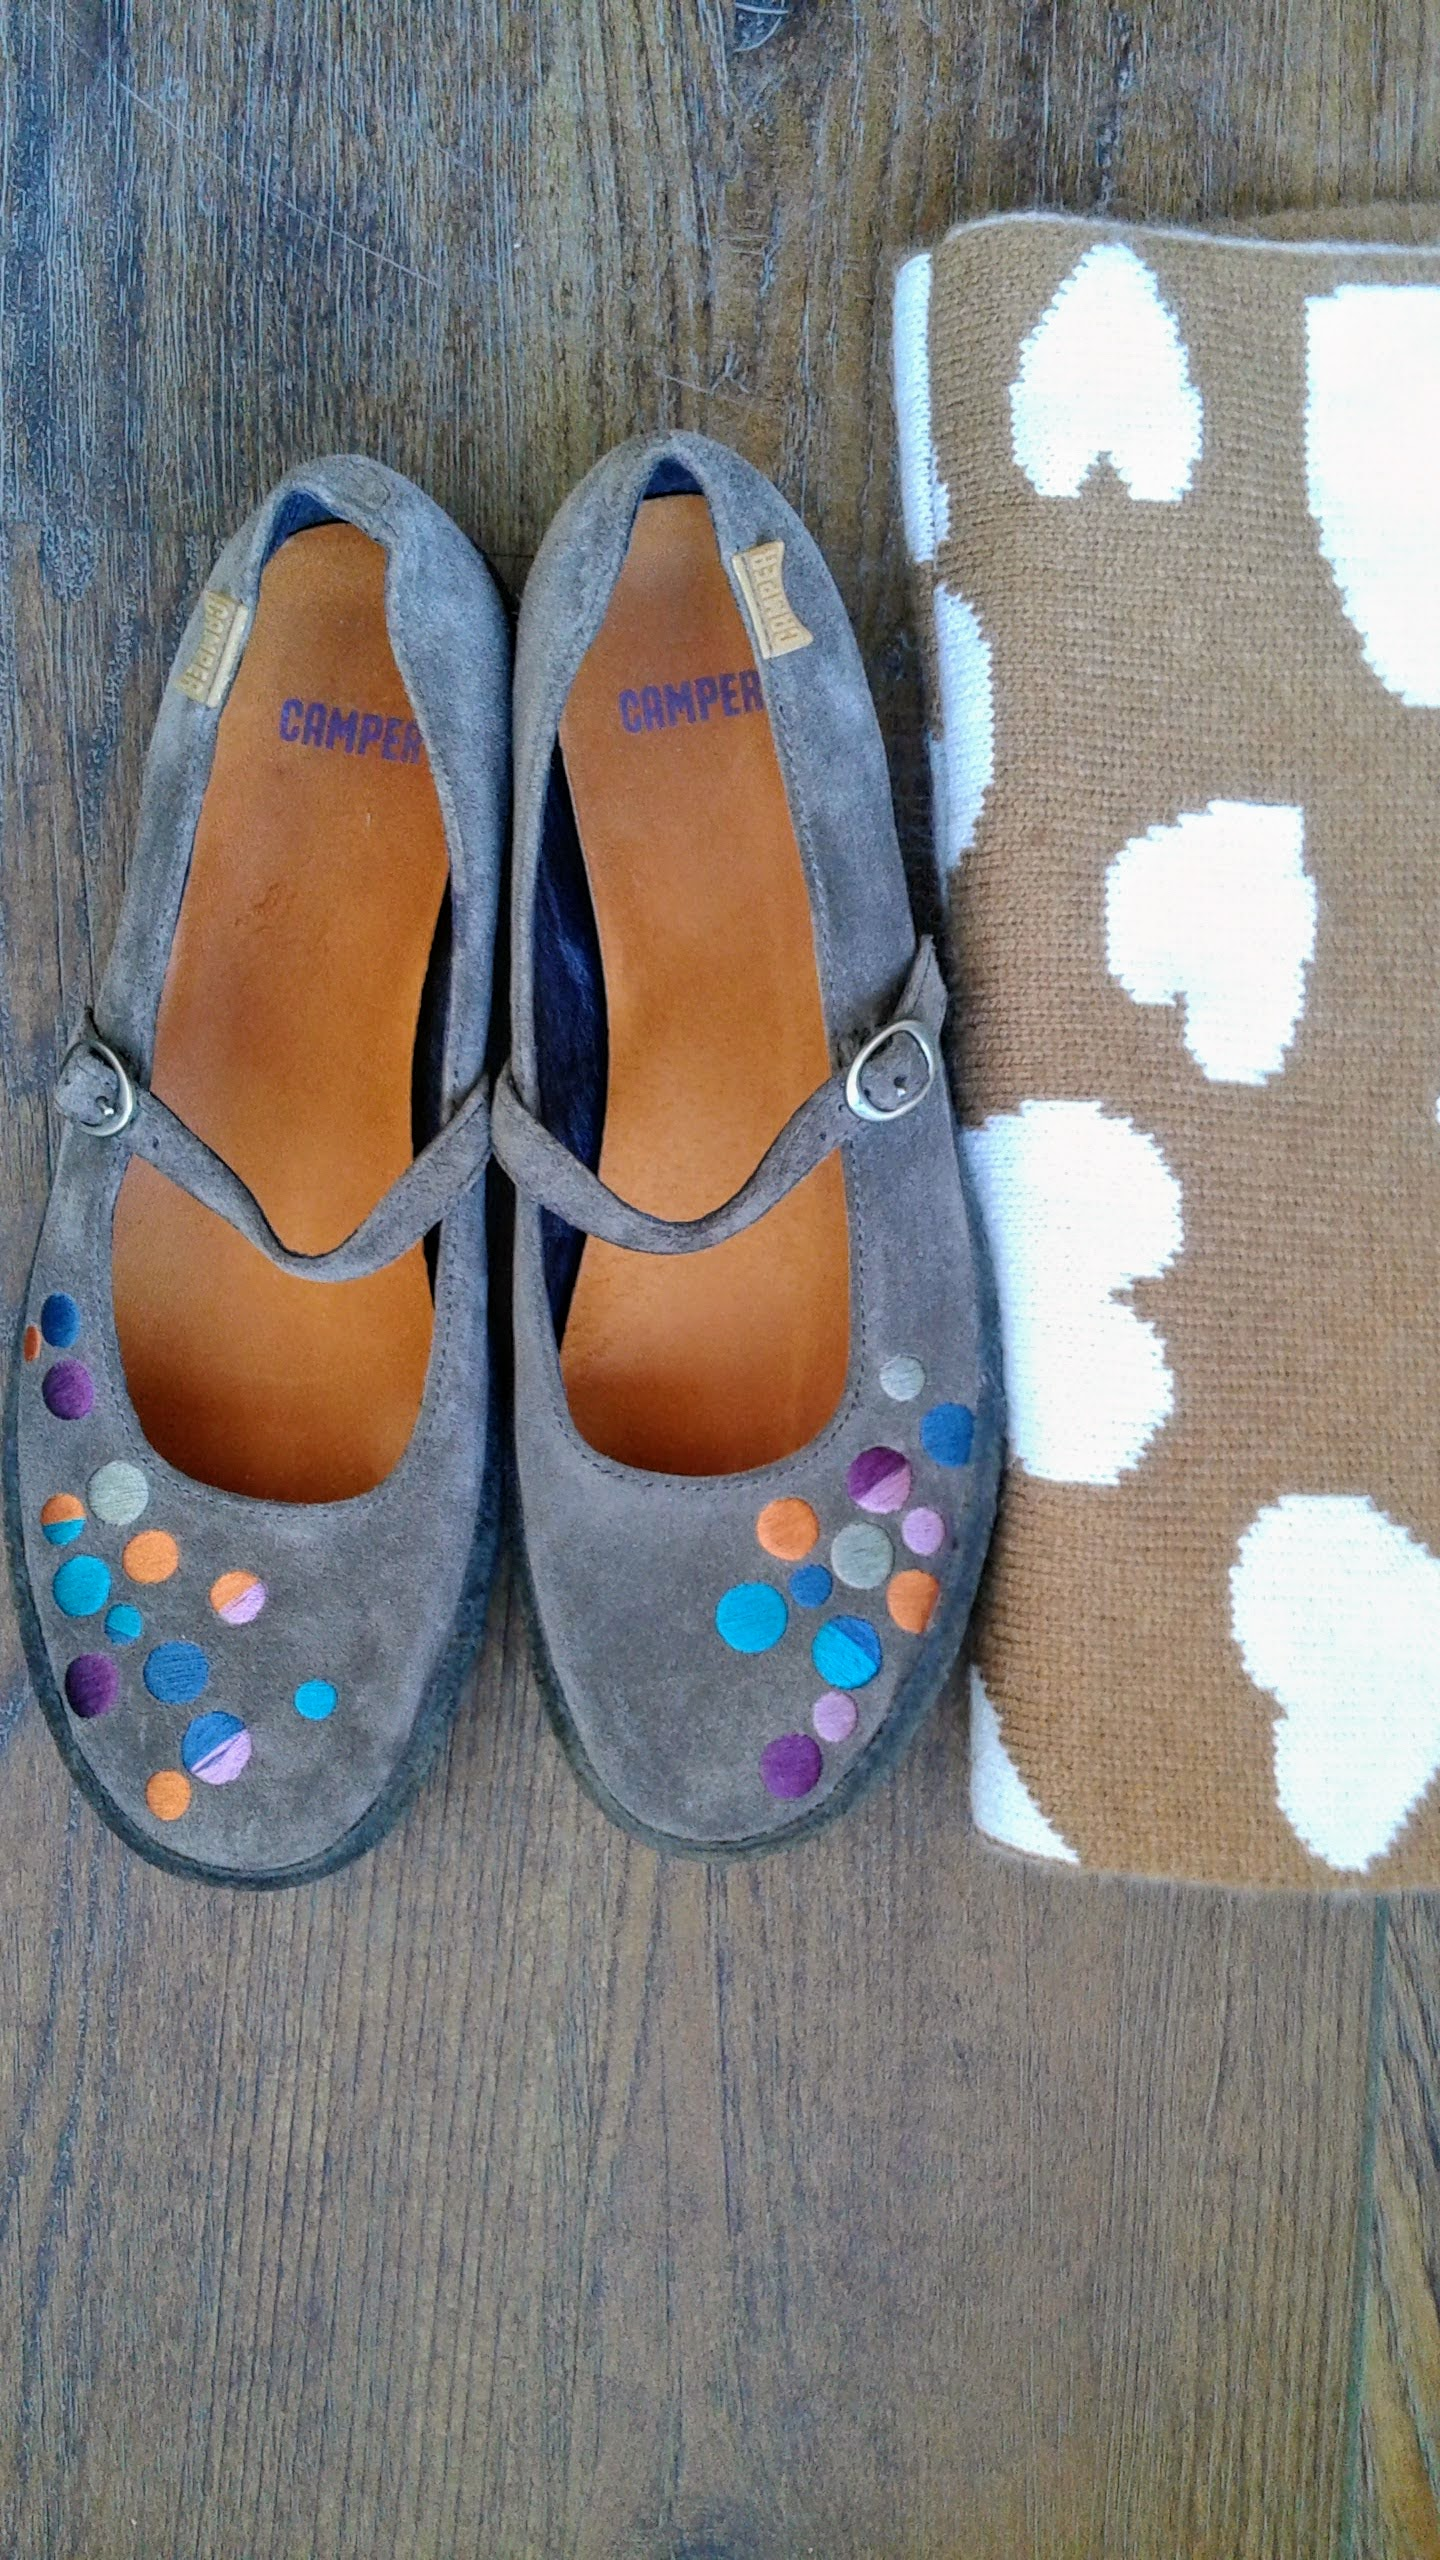 Camper shoes; S7, $40. J Crew scarf, $18